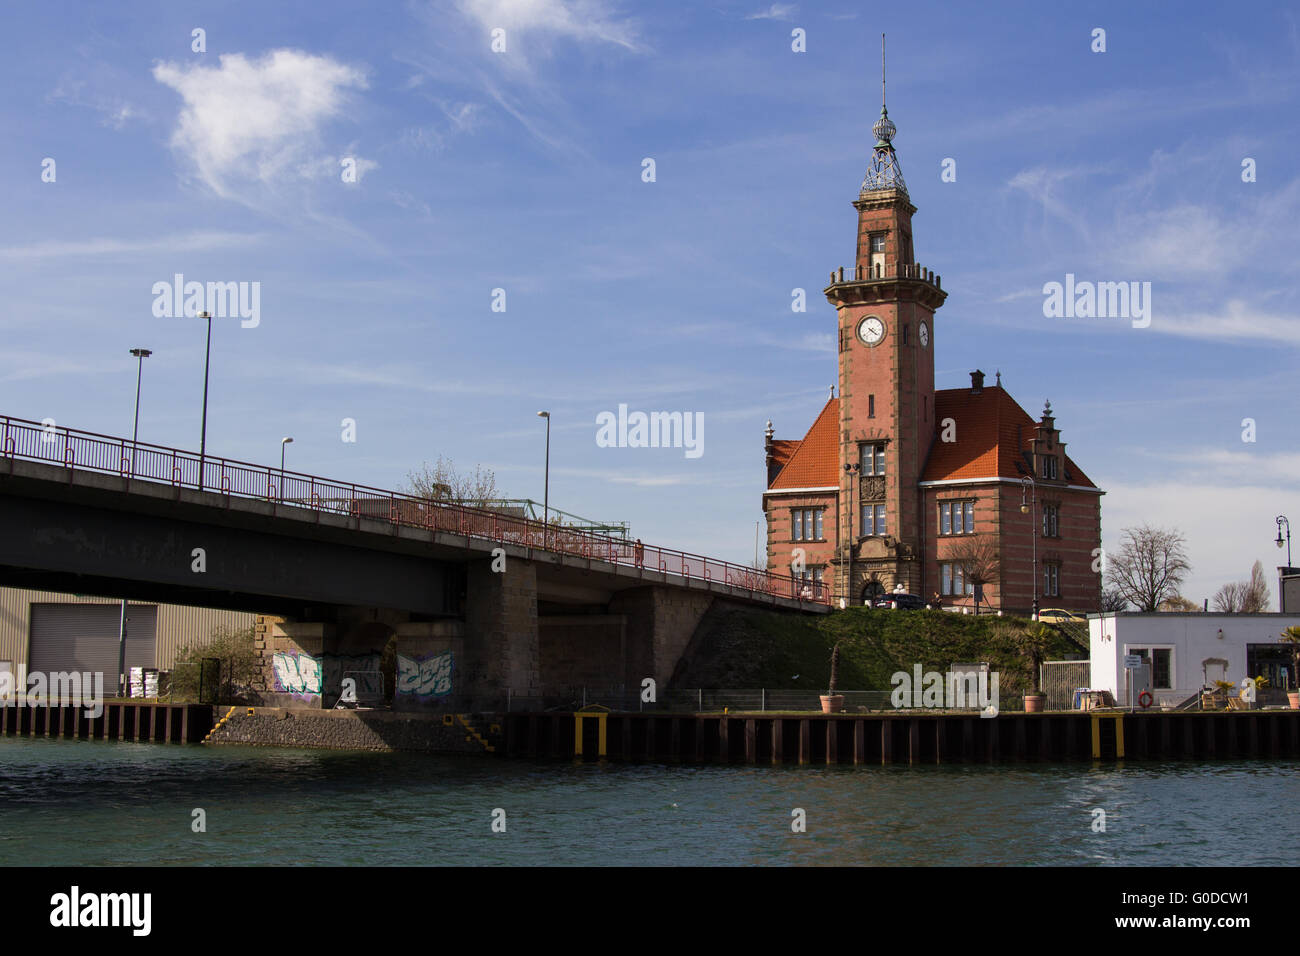 old port authority Dortmund - Stock Image